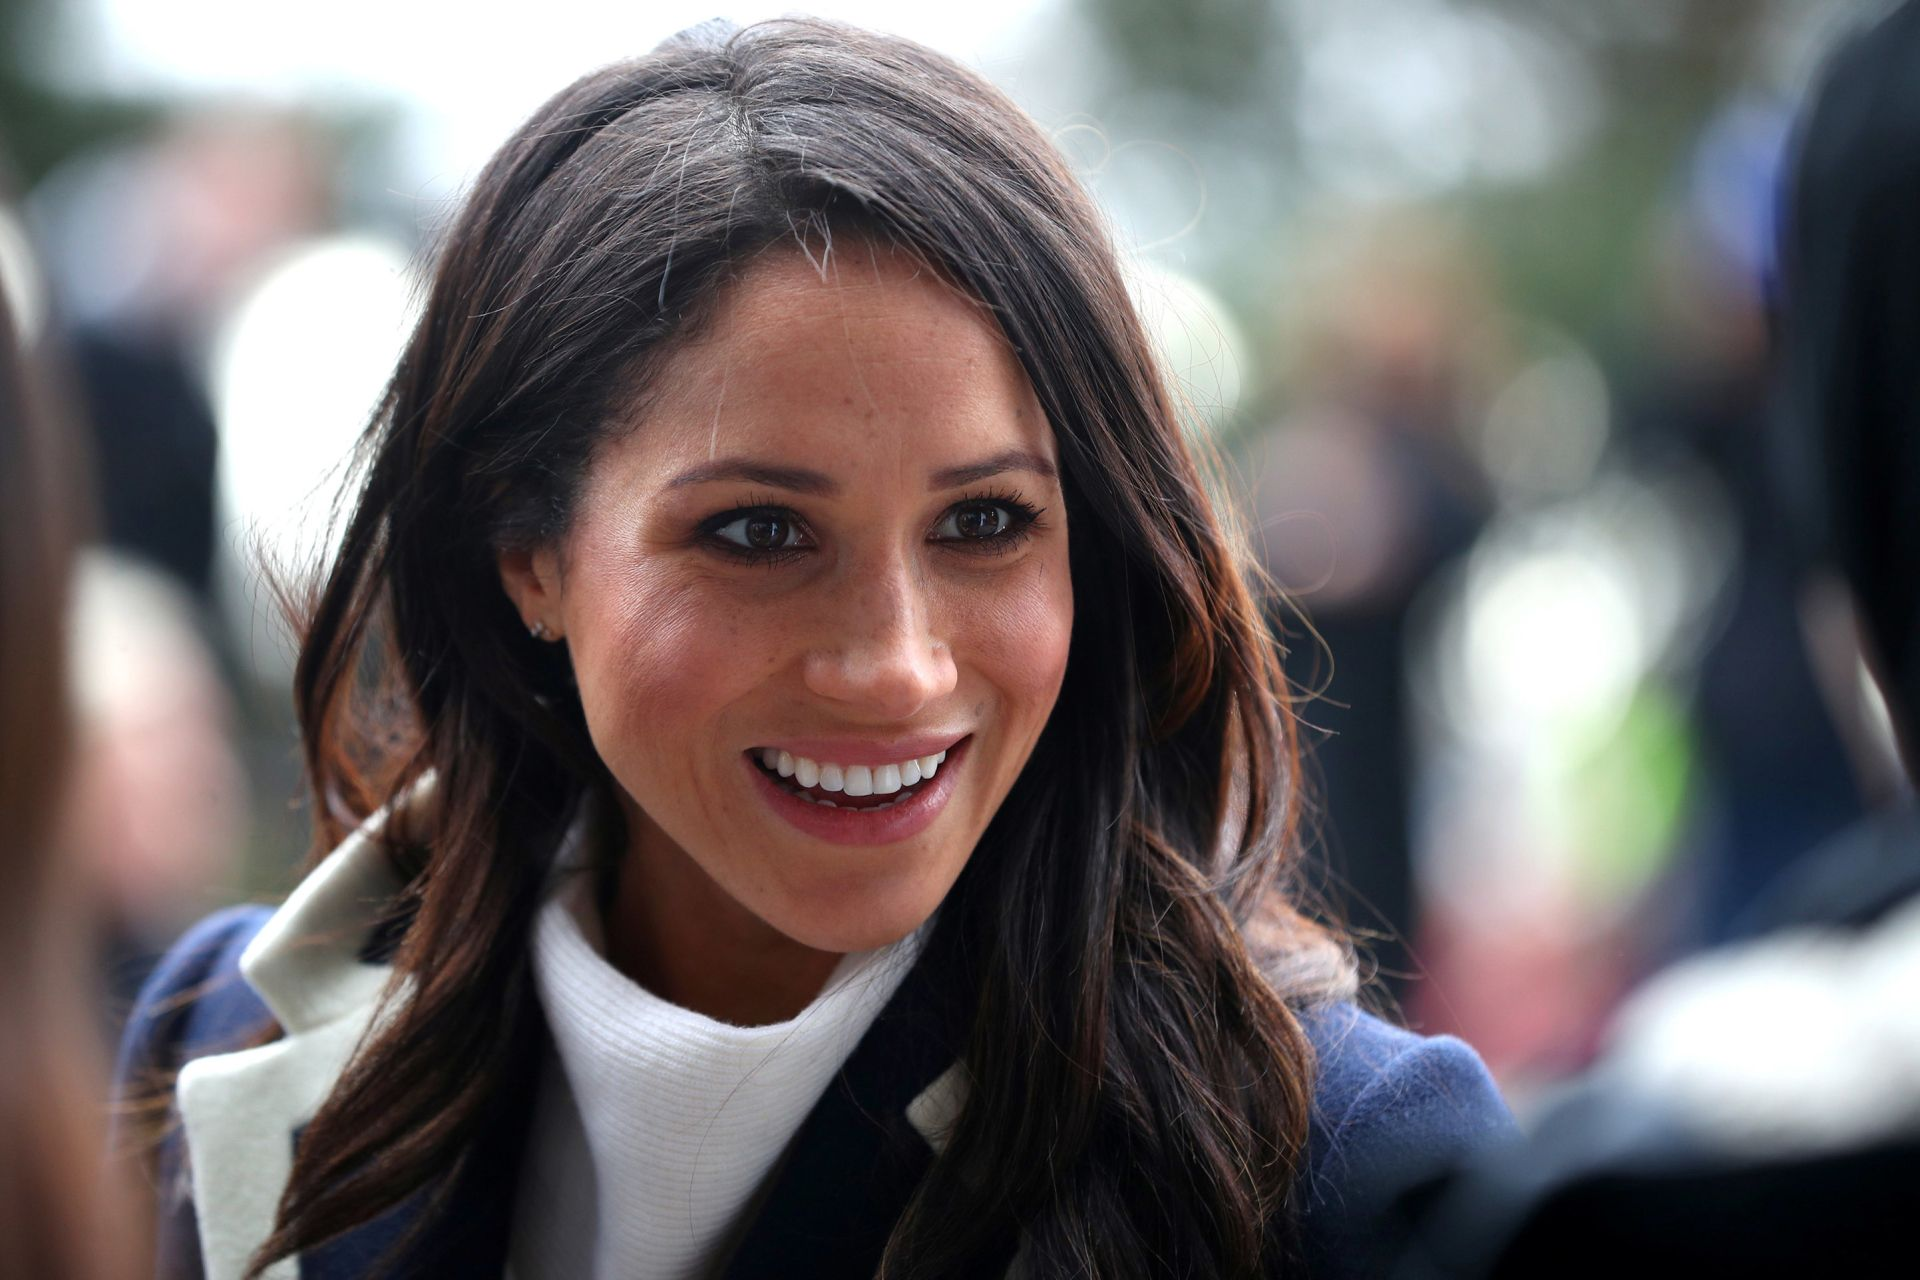 "(FILES) In this file photo taken on March 8, 2018 Britain's Prince Harry's fiancee US actress Meghan Markle greets well-wishers as she arrives with the prince at Millennium Point to attend an event hosted by social enterprise Stemettes to celebrate International Women's Day in Birmingham.Raised in Hollywood, she graduated from Northwestern University in theatre and international relations. She made her name starring as Rachel Zane in the US legal drama television series ""Suits"" from 2011 to 2017. She was a"